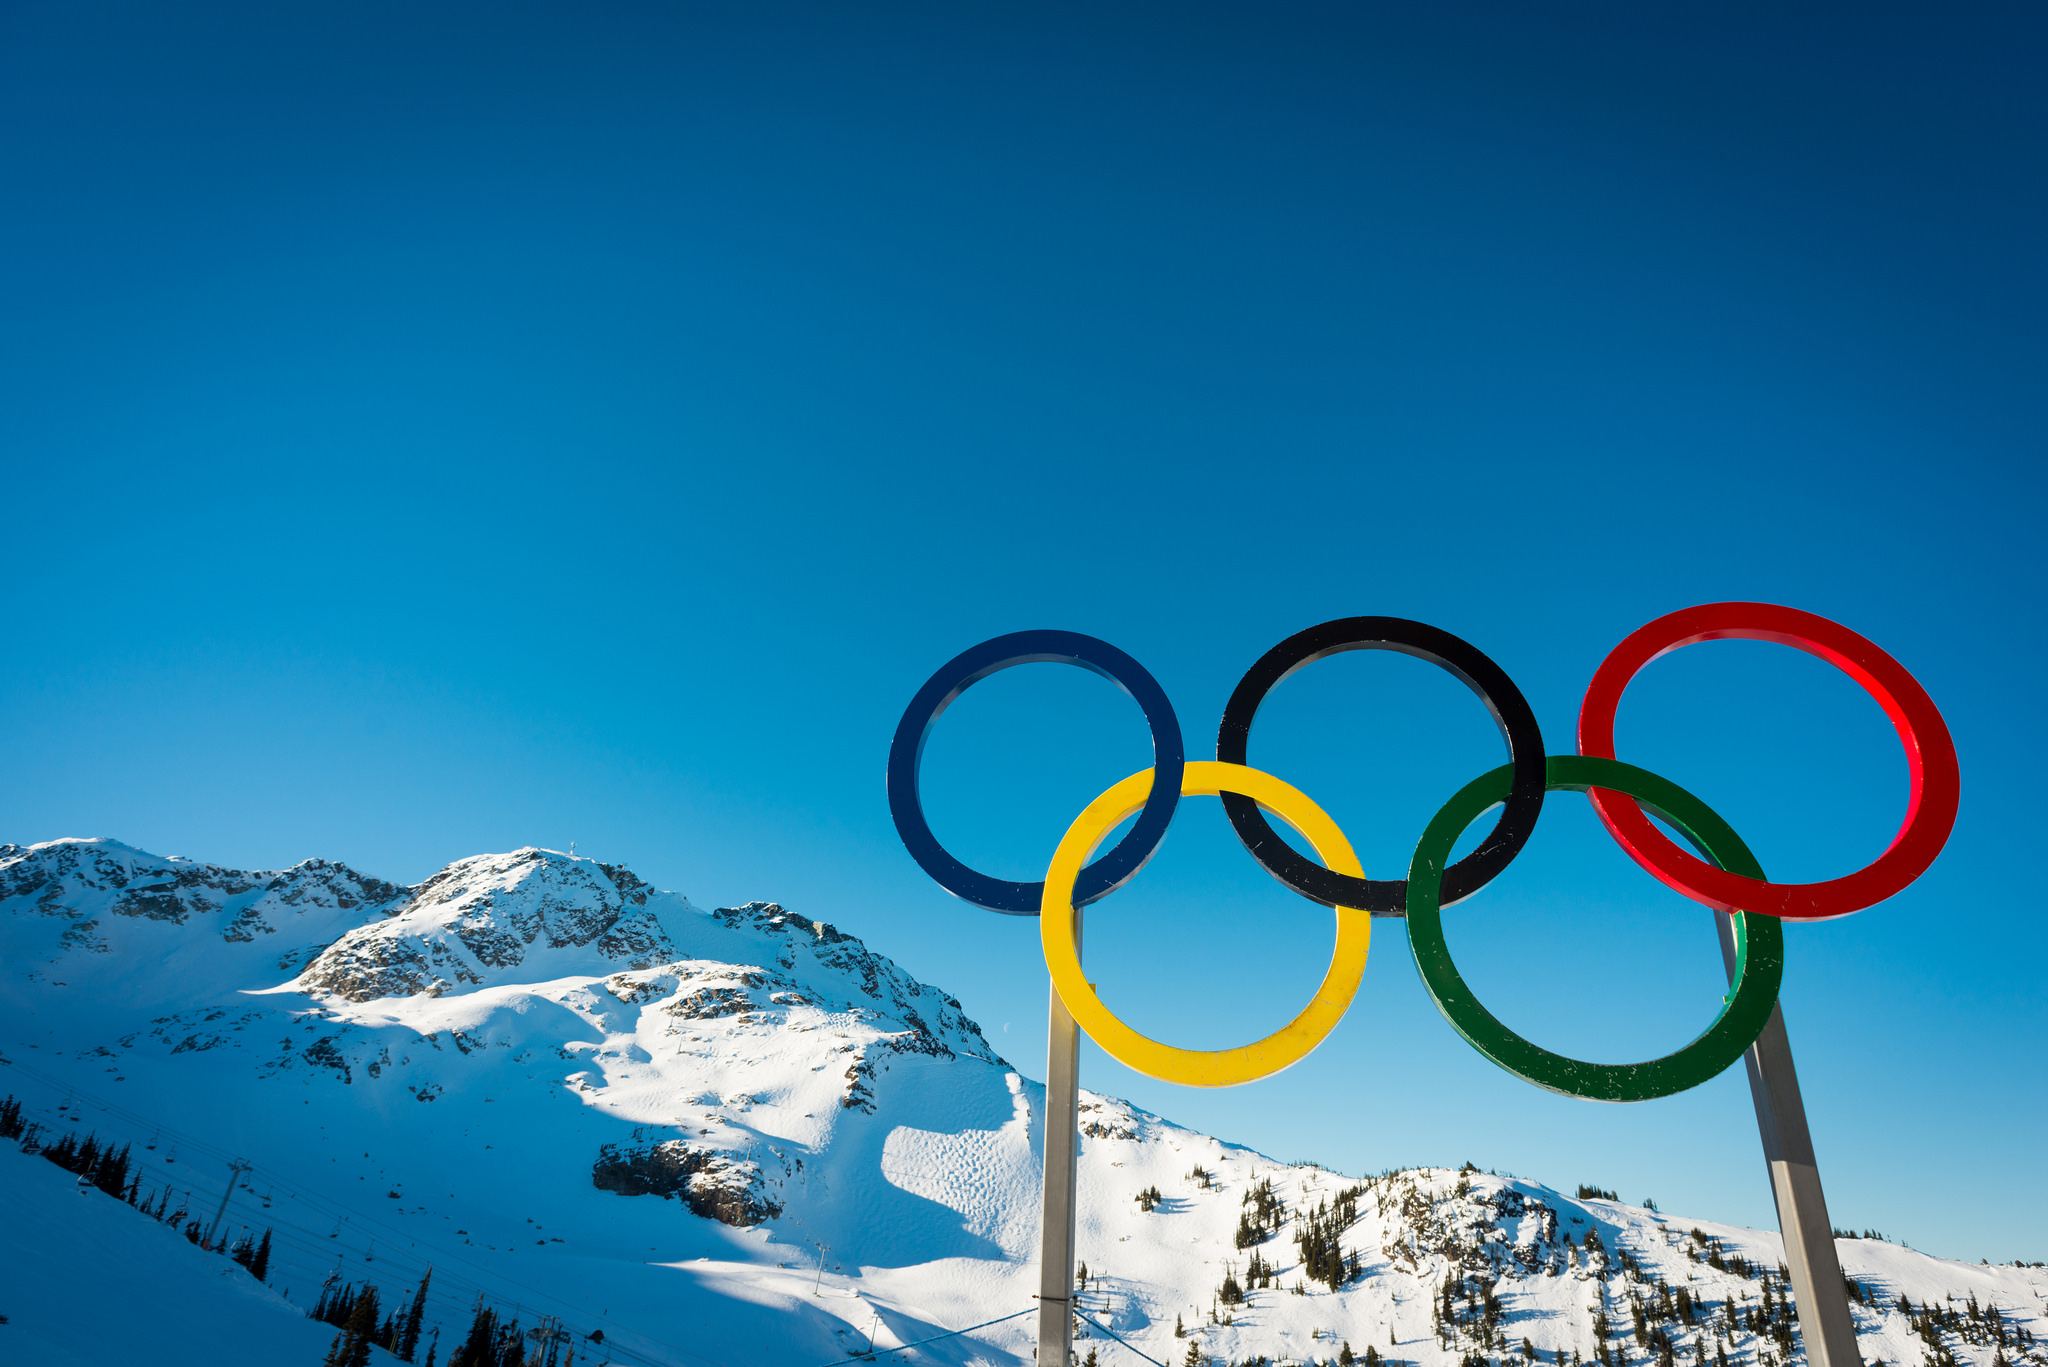 Winter Olympics Live: Updates, events, medal